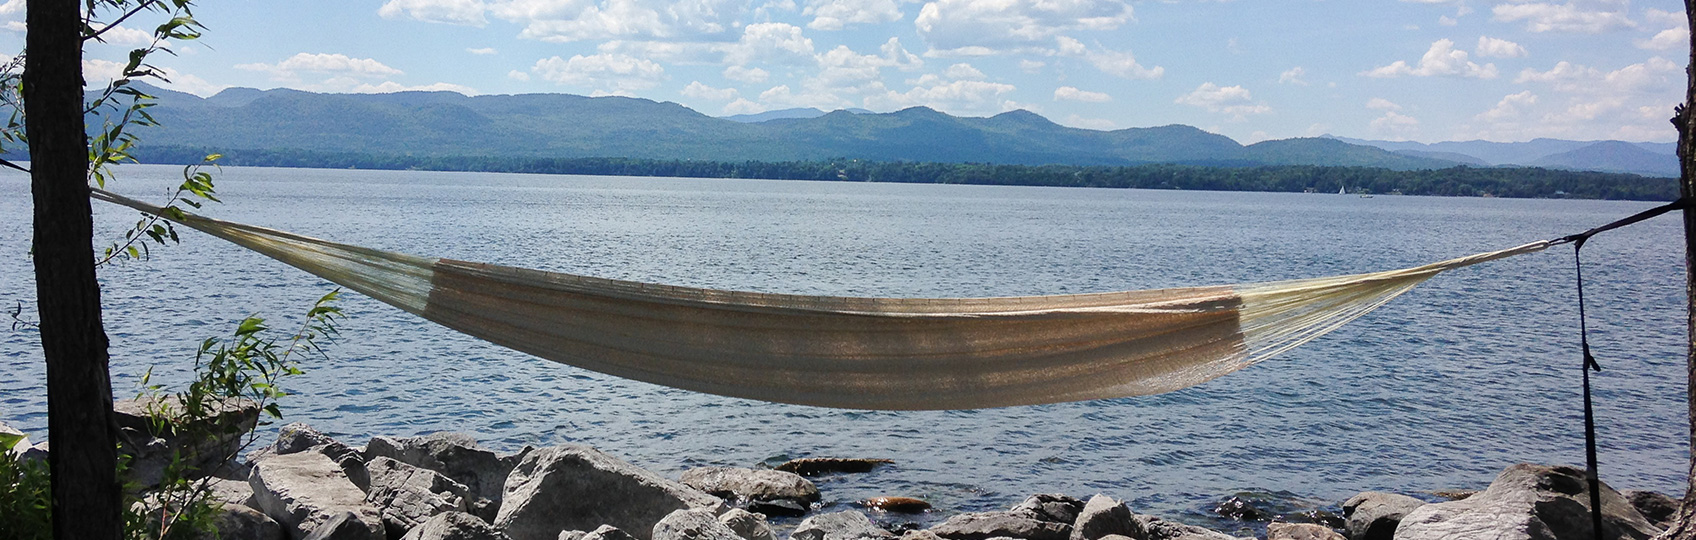 panton vermont lakefront homes for sale